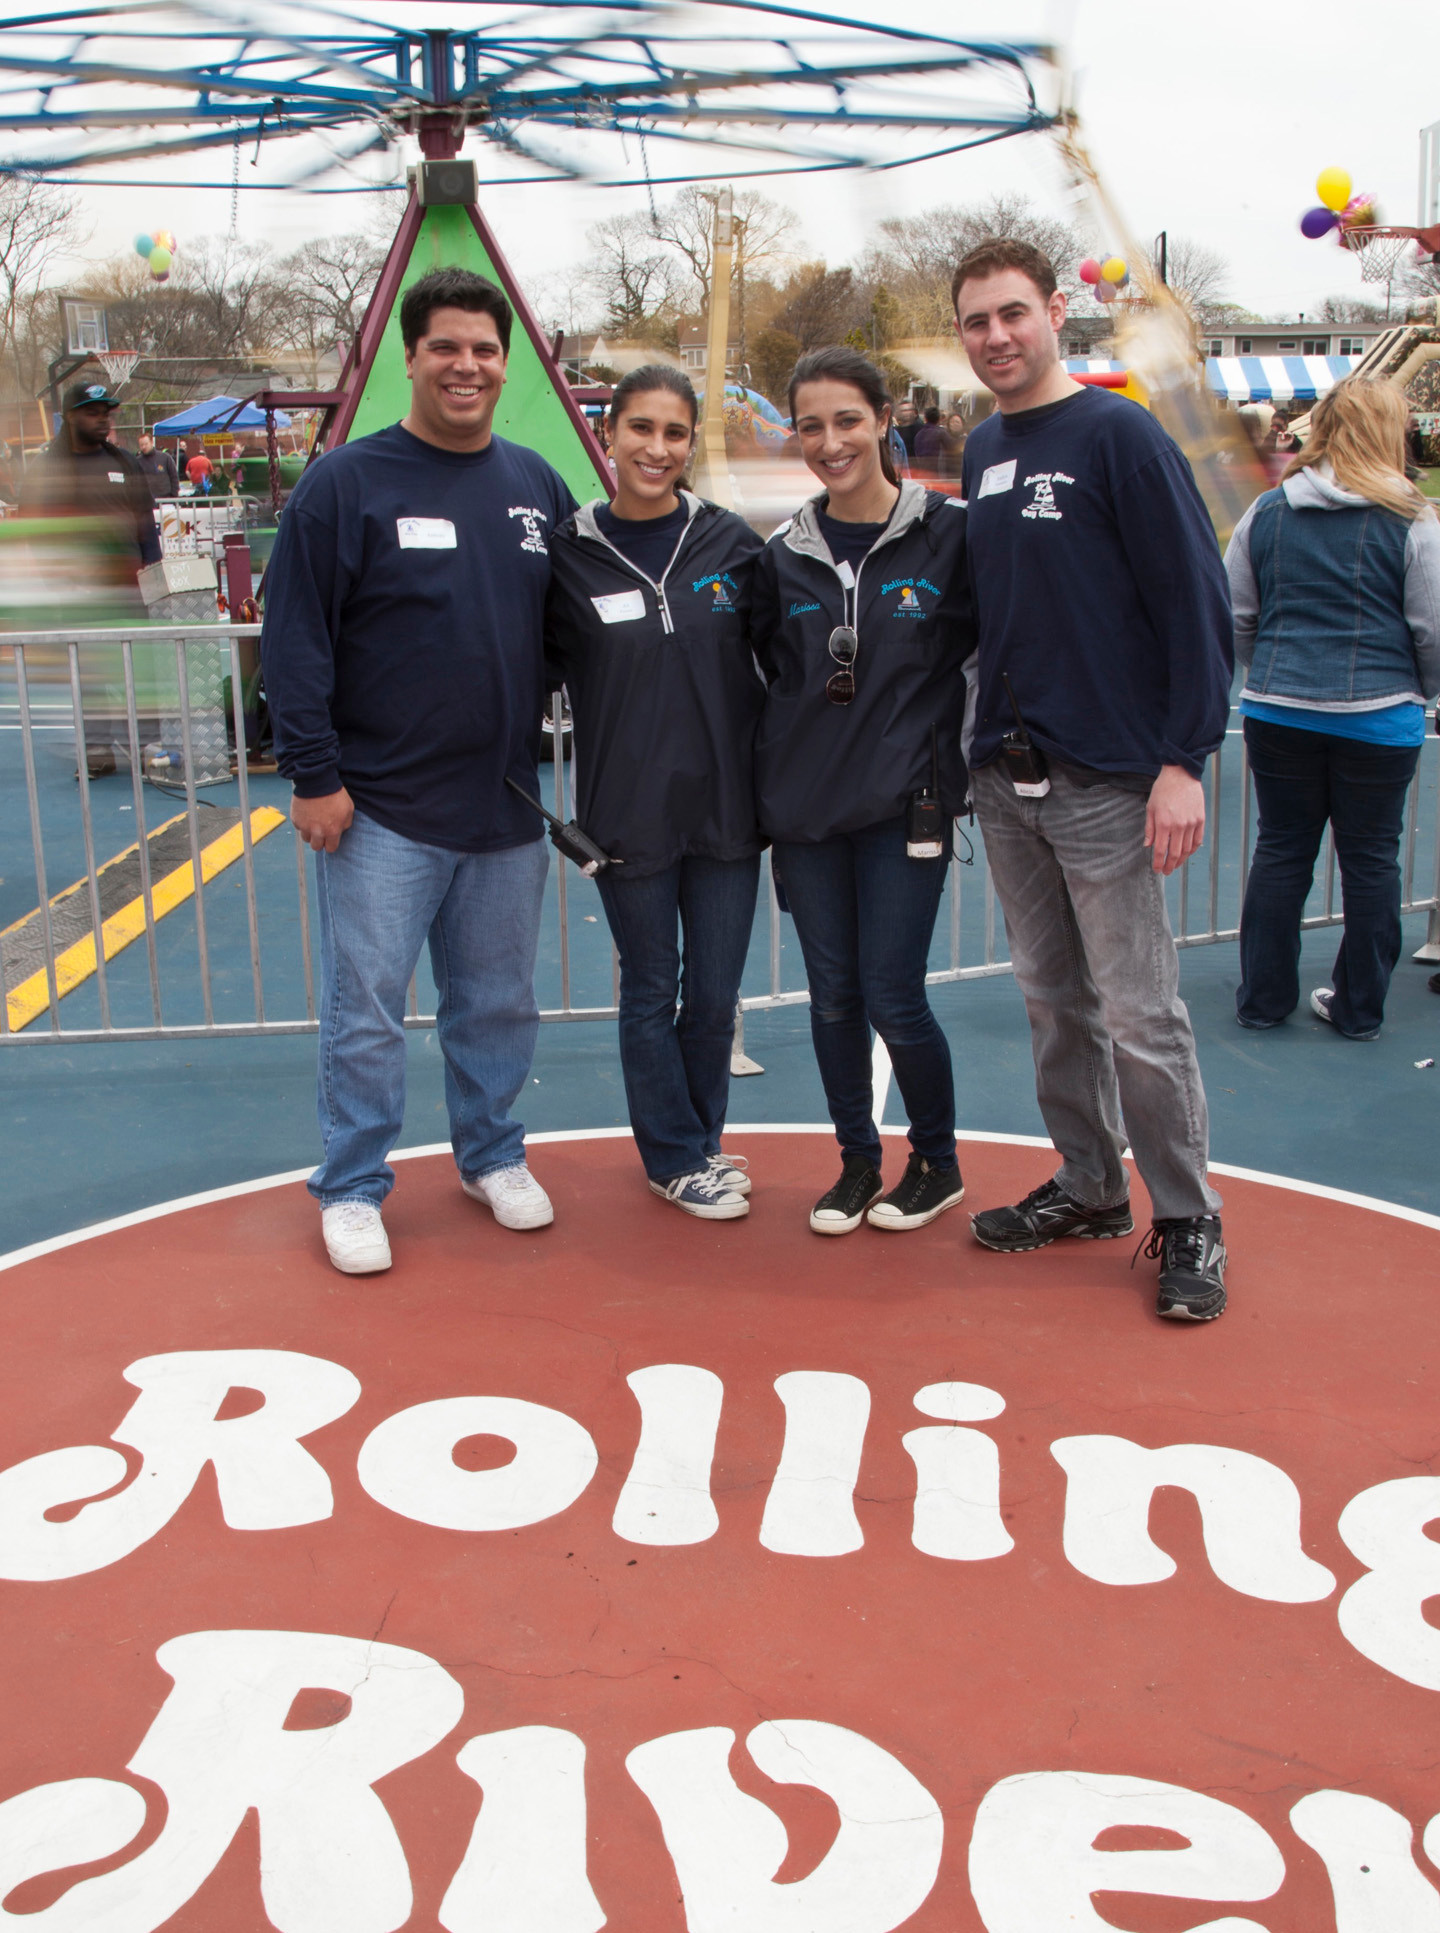 Rolling River staff enjoyed the day. Pictured from left were Anthony Bruno, Ali Goodman, Marisa Allaven and Andrew Liebowitz.